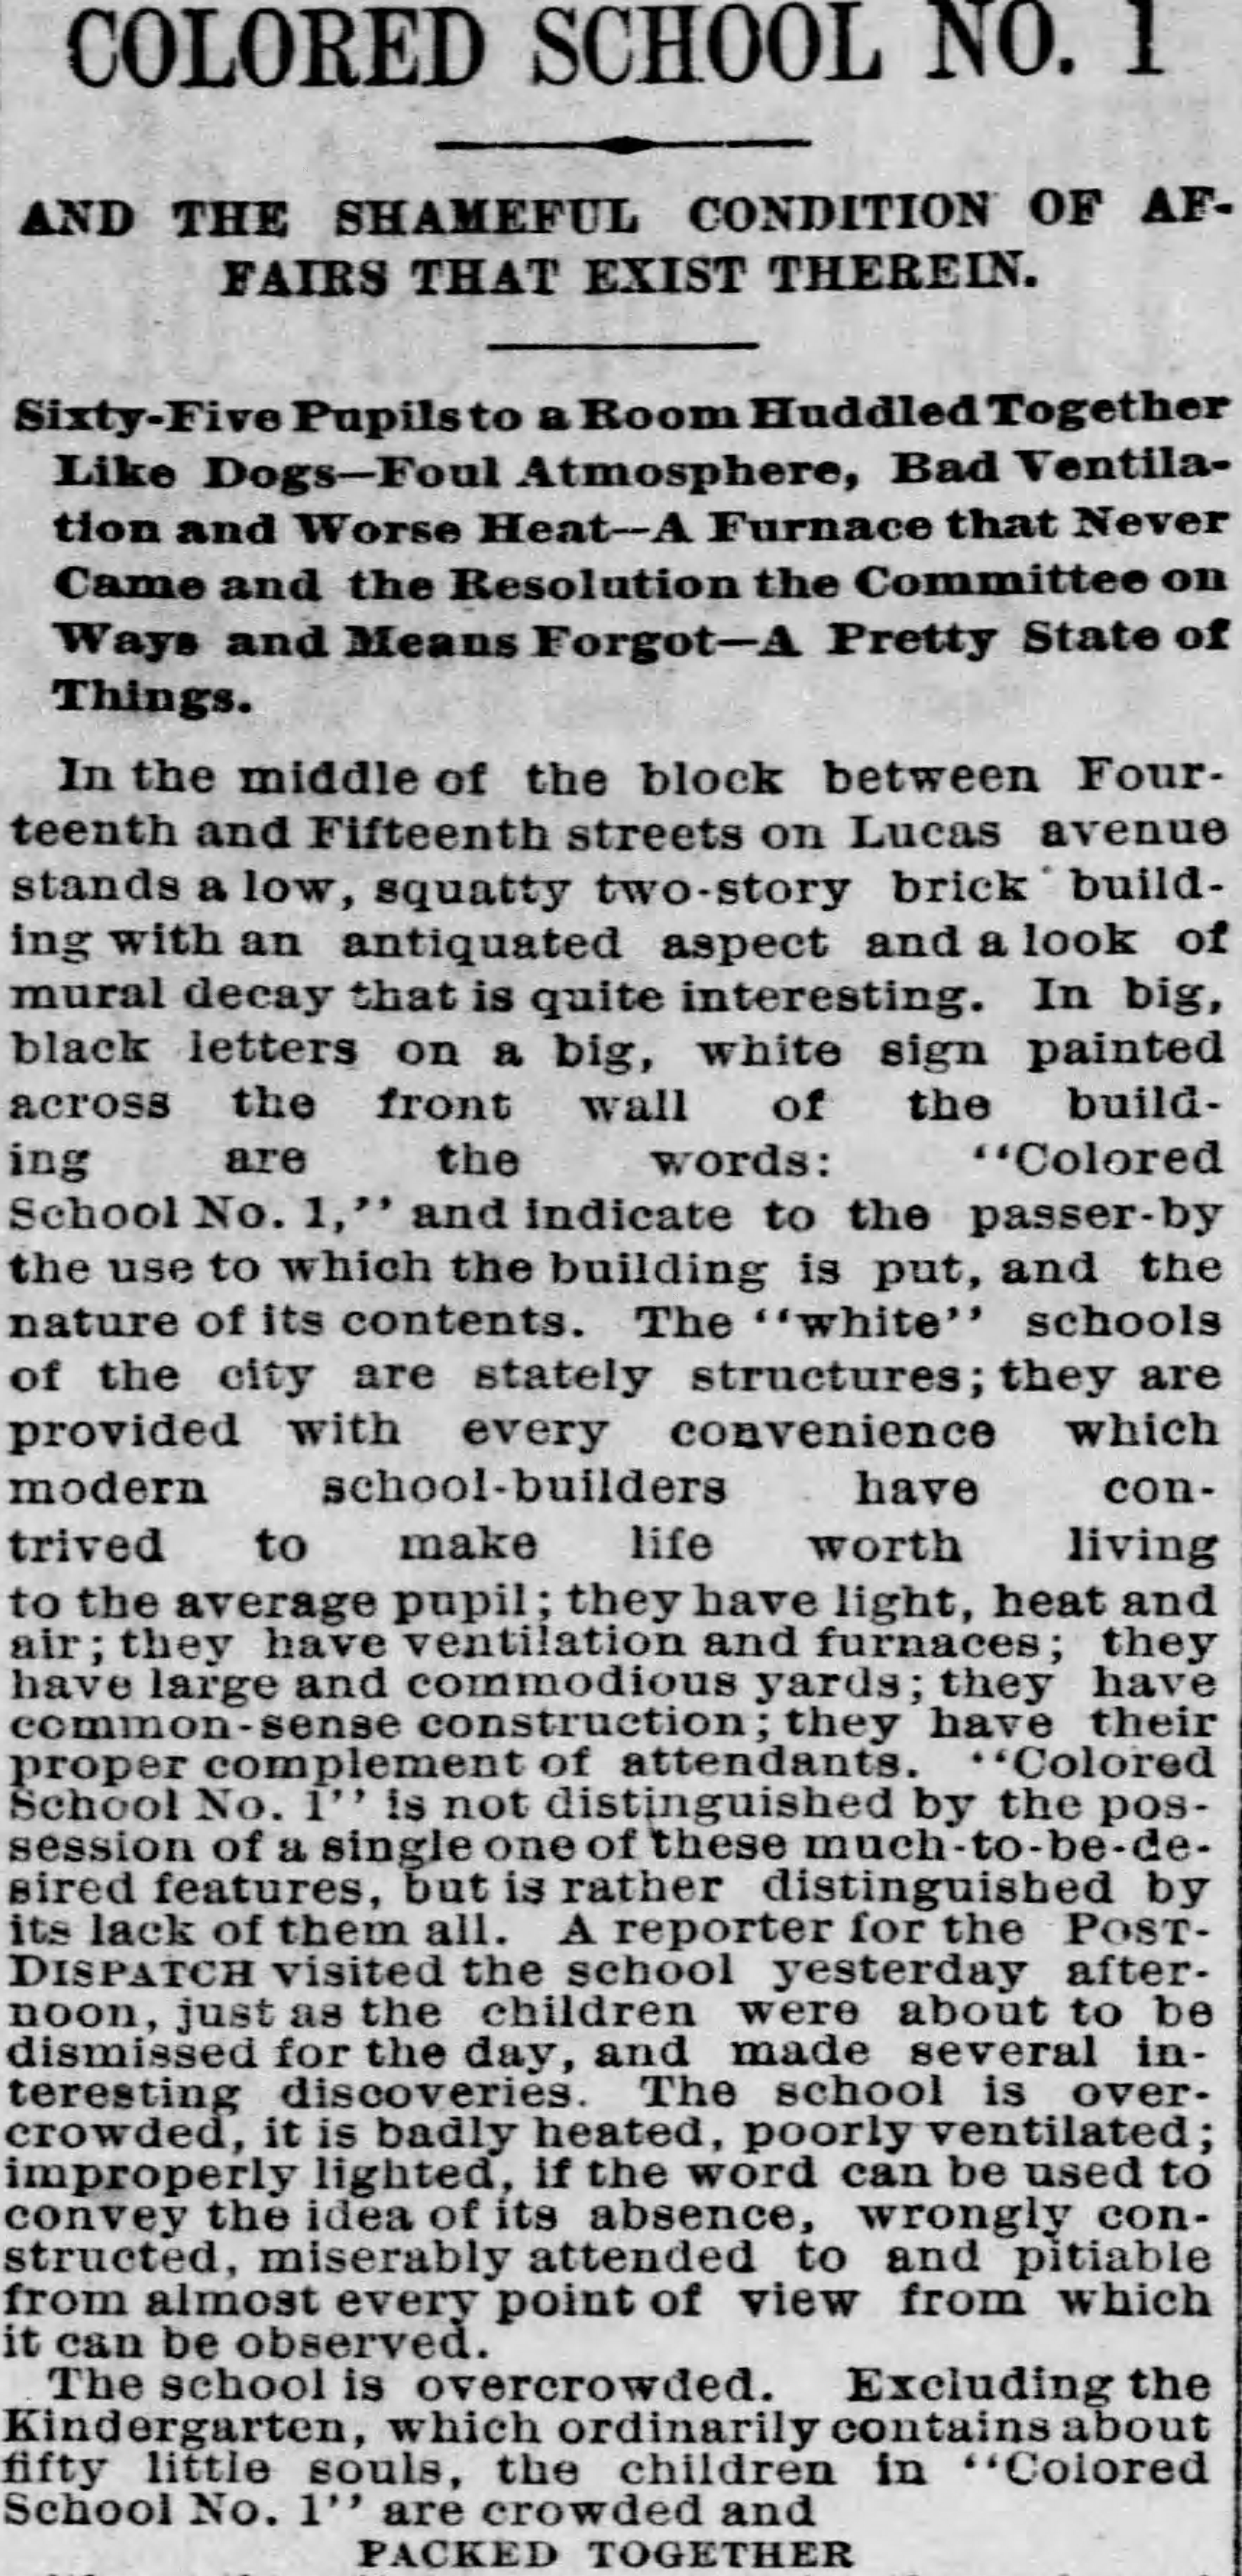 Description of the horrid conditions students and faculty faced at Colored School No. 1